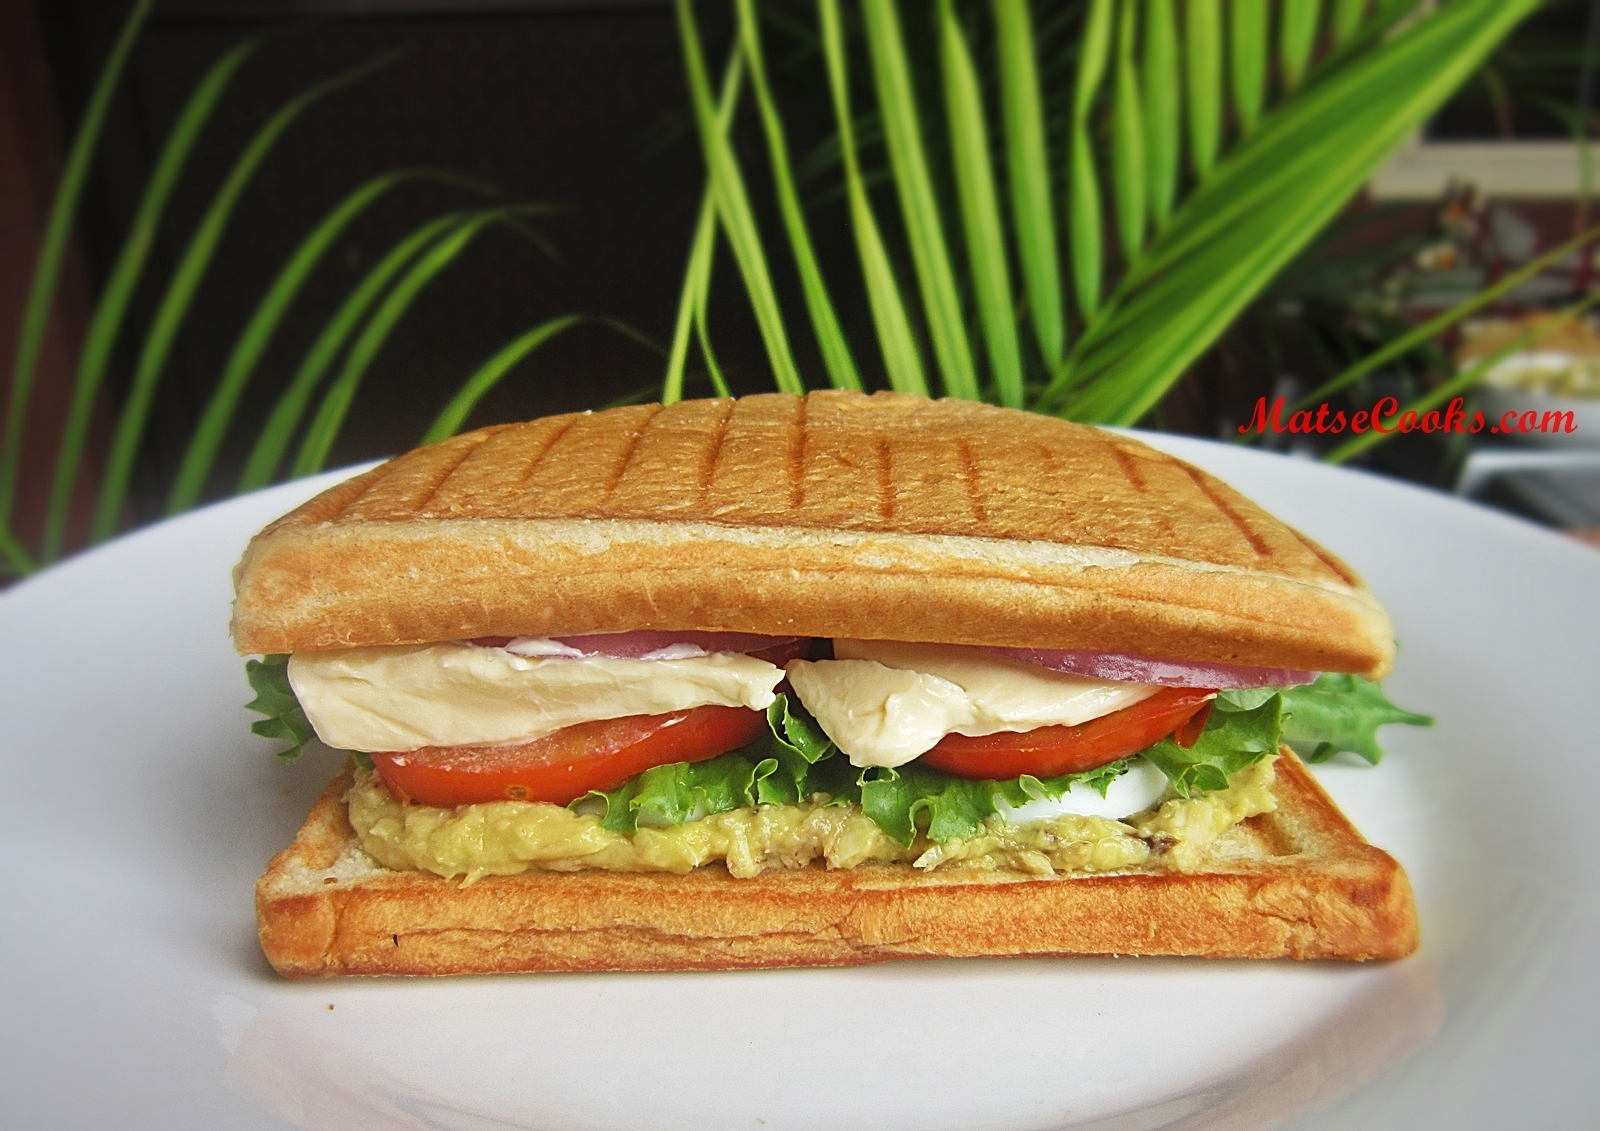 Breakfast Series: Avocado and Smoked Mackerel Sandwich